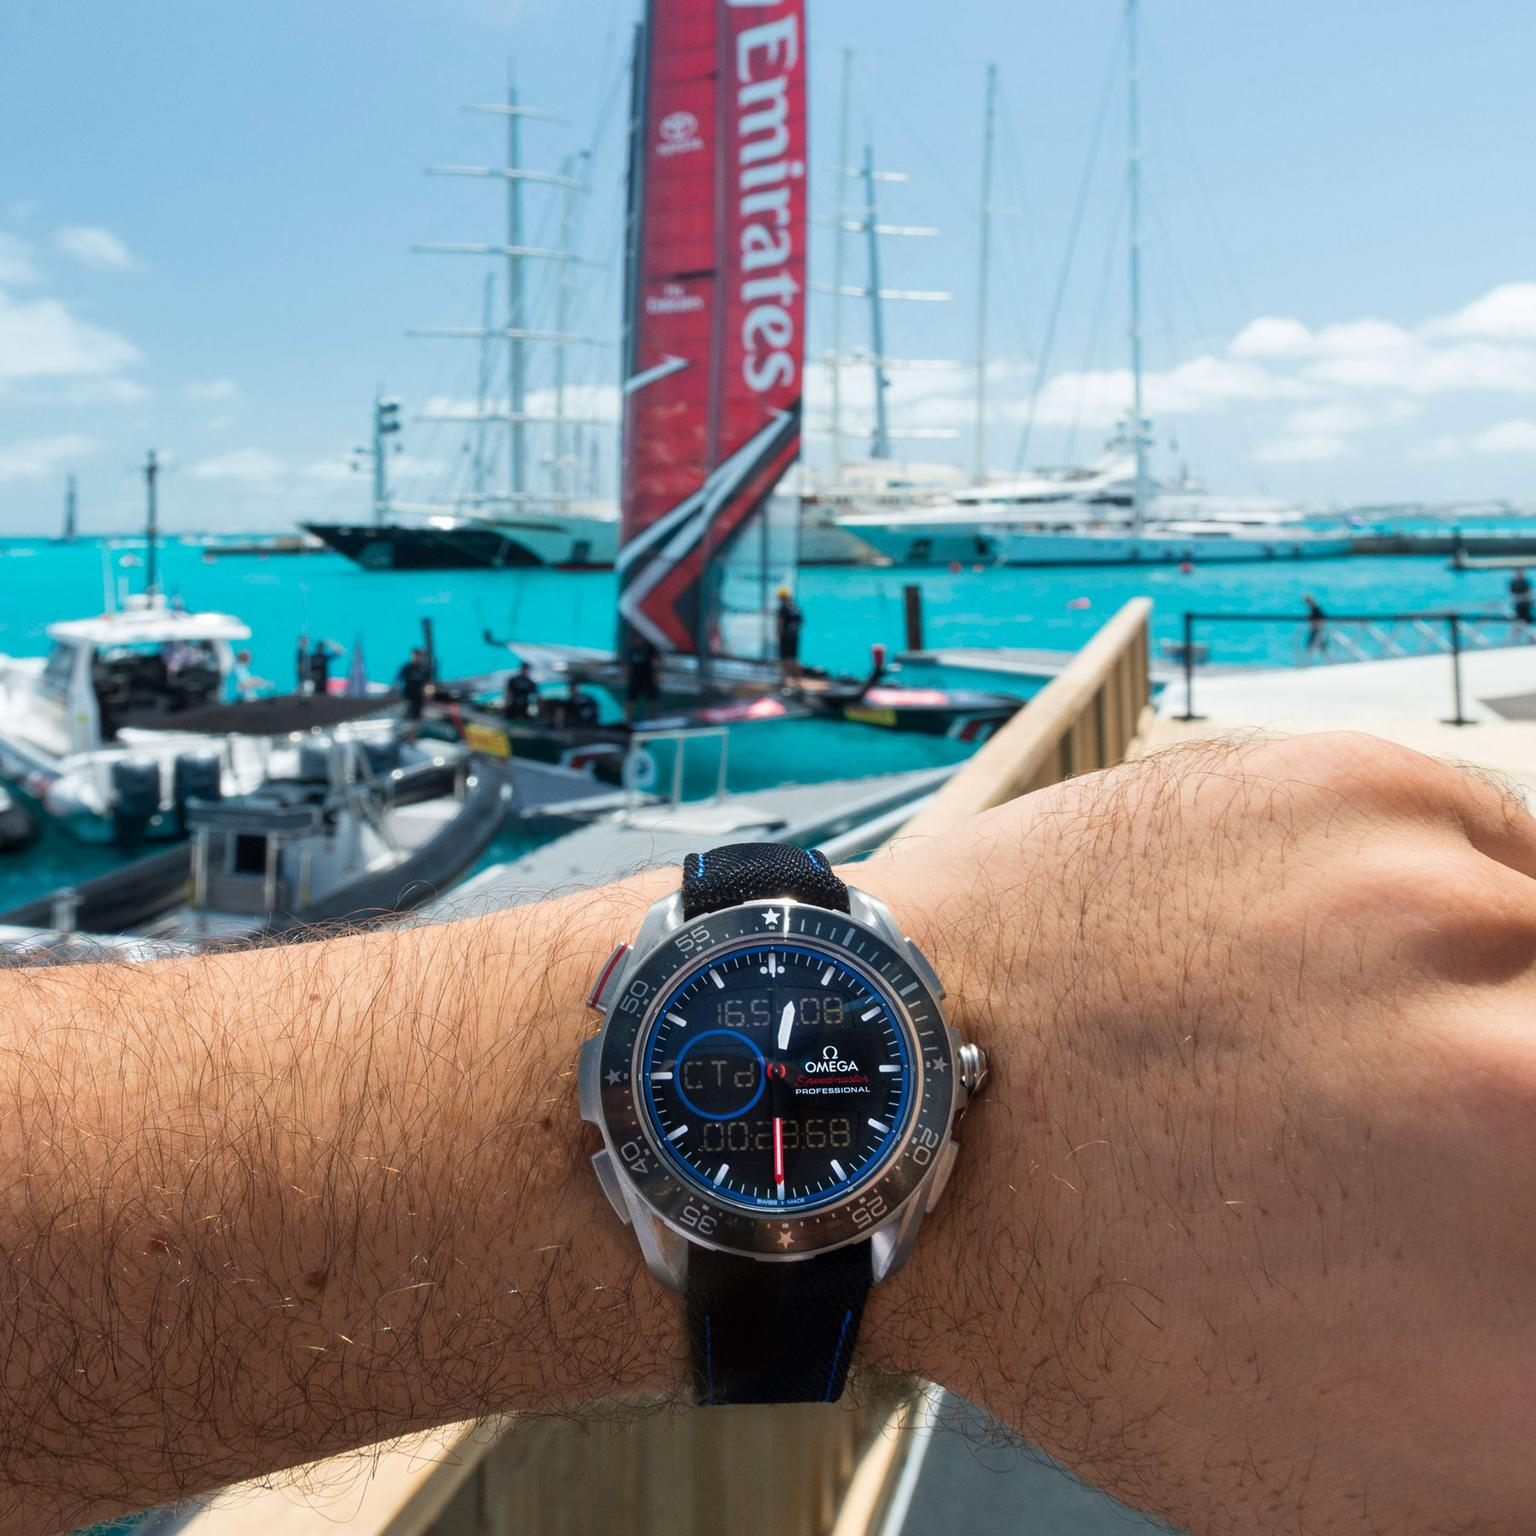 Omega Speedmaster X-33 Regatta watch at the America's Cup in Bermuda 2017